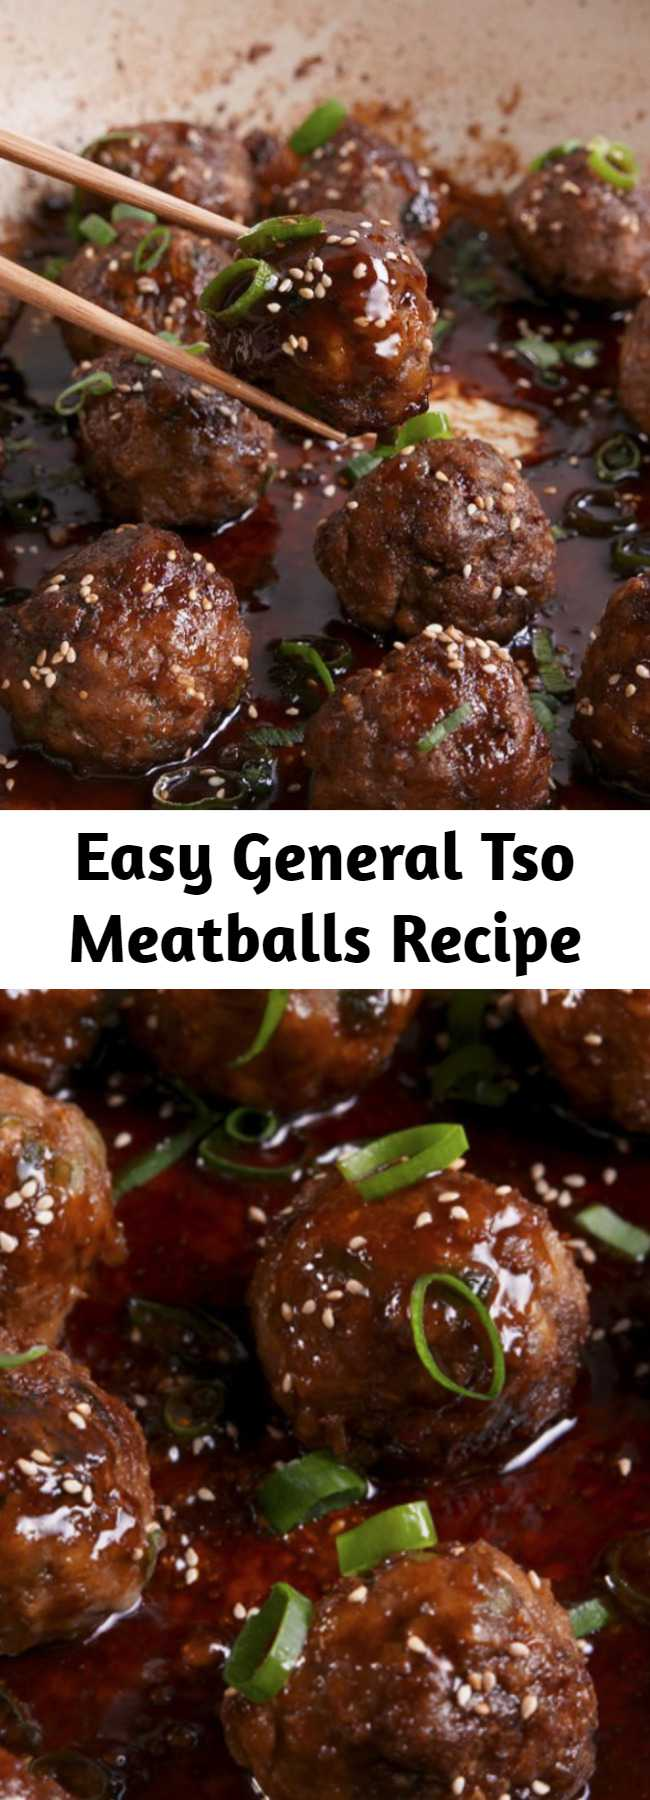 Easy General Tso Meatballs Recipe - Skip the takeout and create your own version as a meatball. #food #easyrecipe #dinner #familydinner #ideas